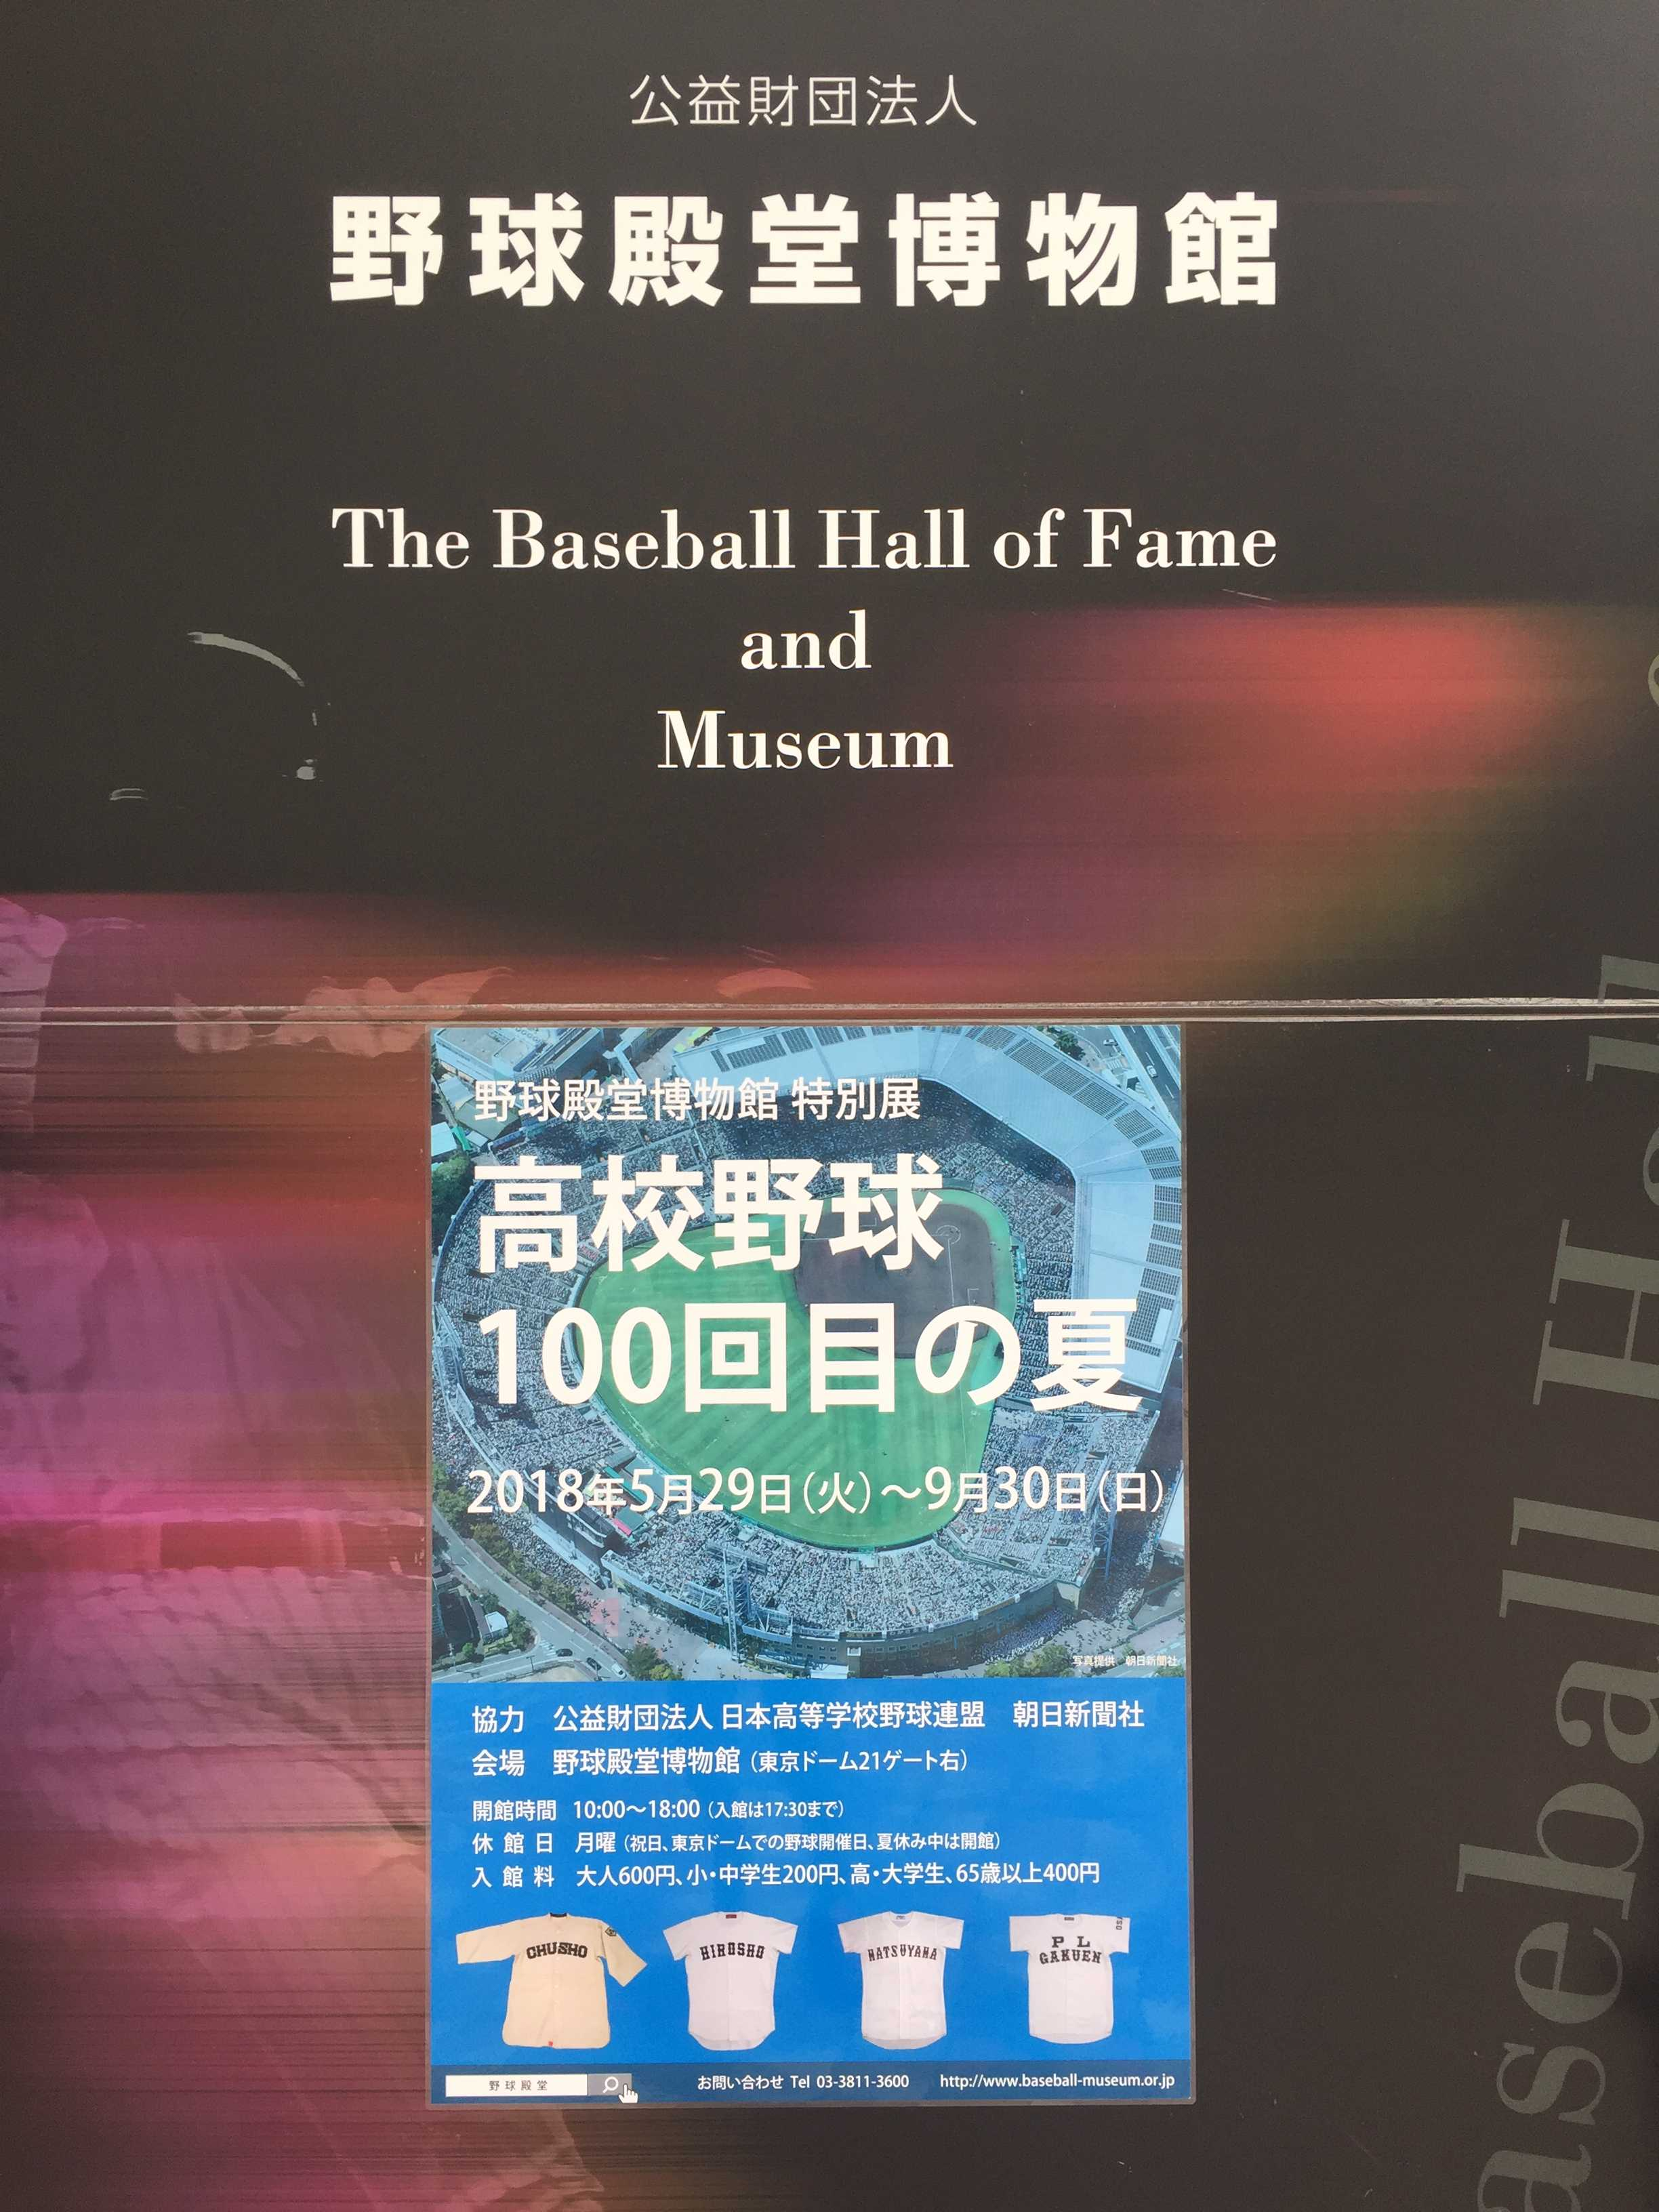 The Baseball Hall of Fame and Museum - 野球殿堂博物館